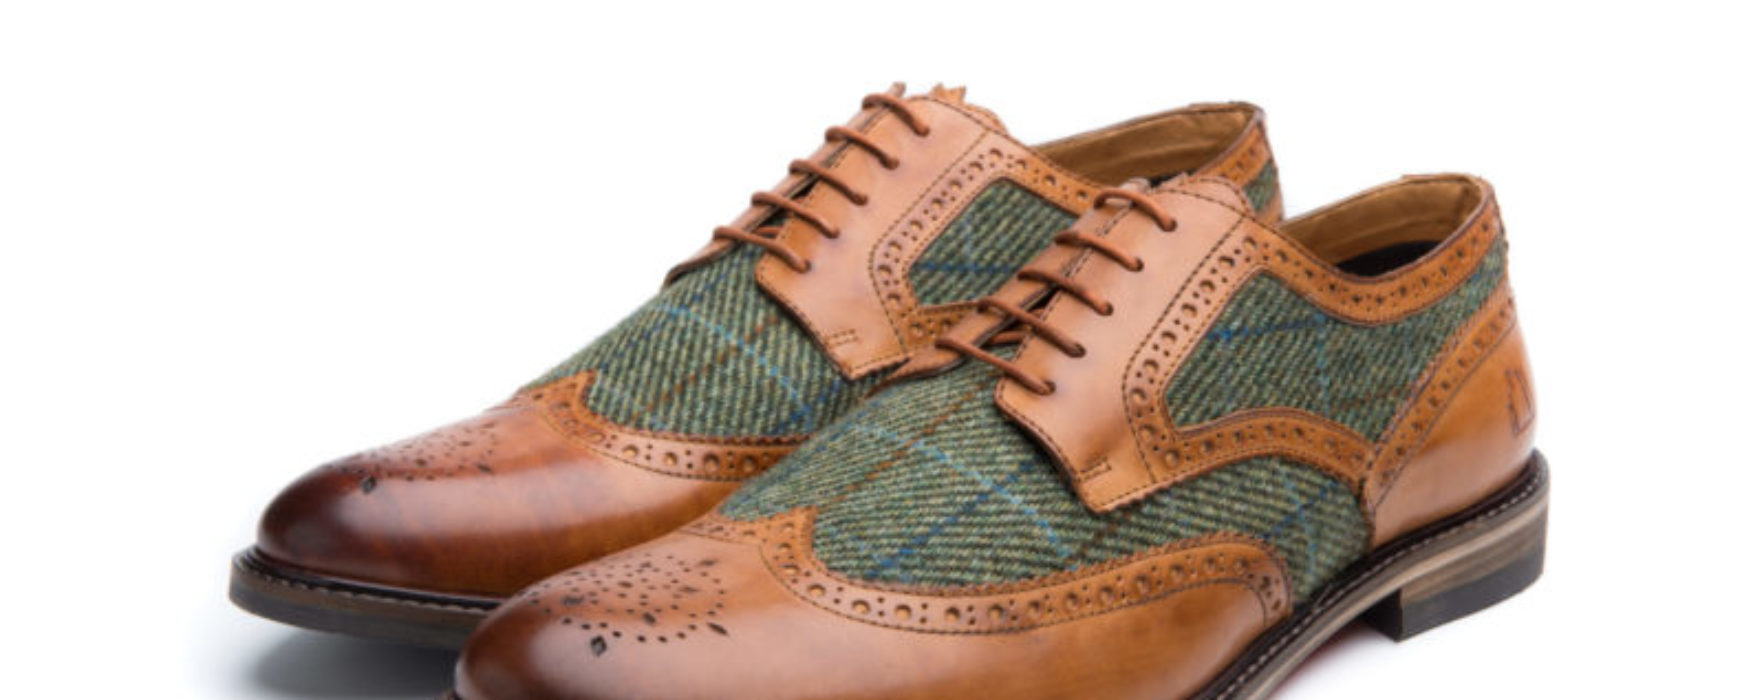 Knock your socks off with our fave new shoe company LANX at Spinningfields Maker's Market